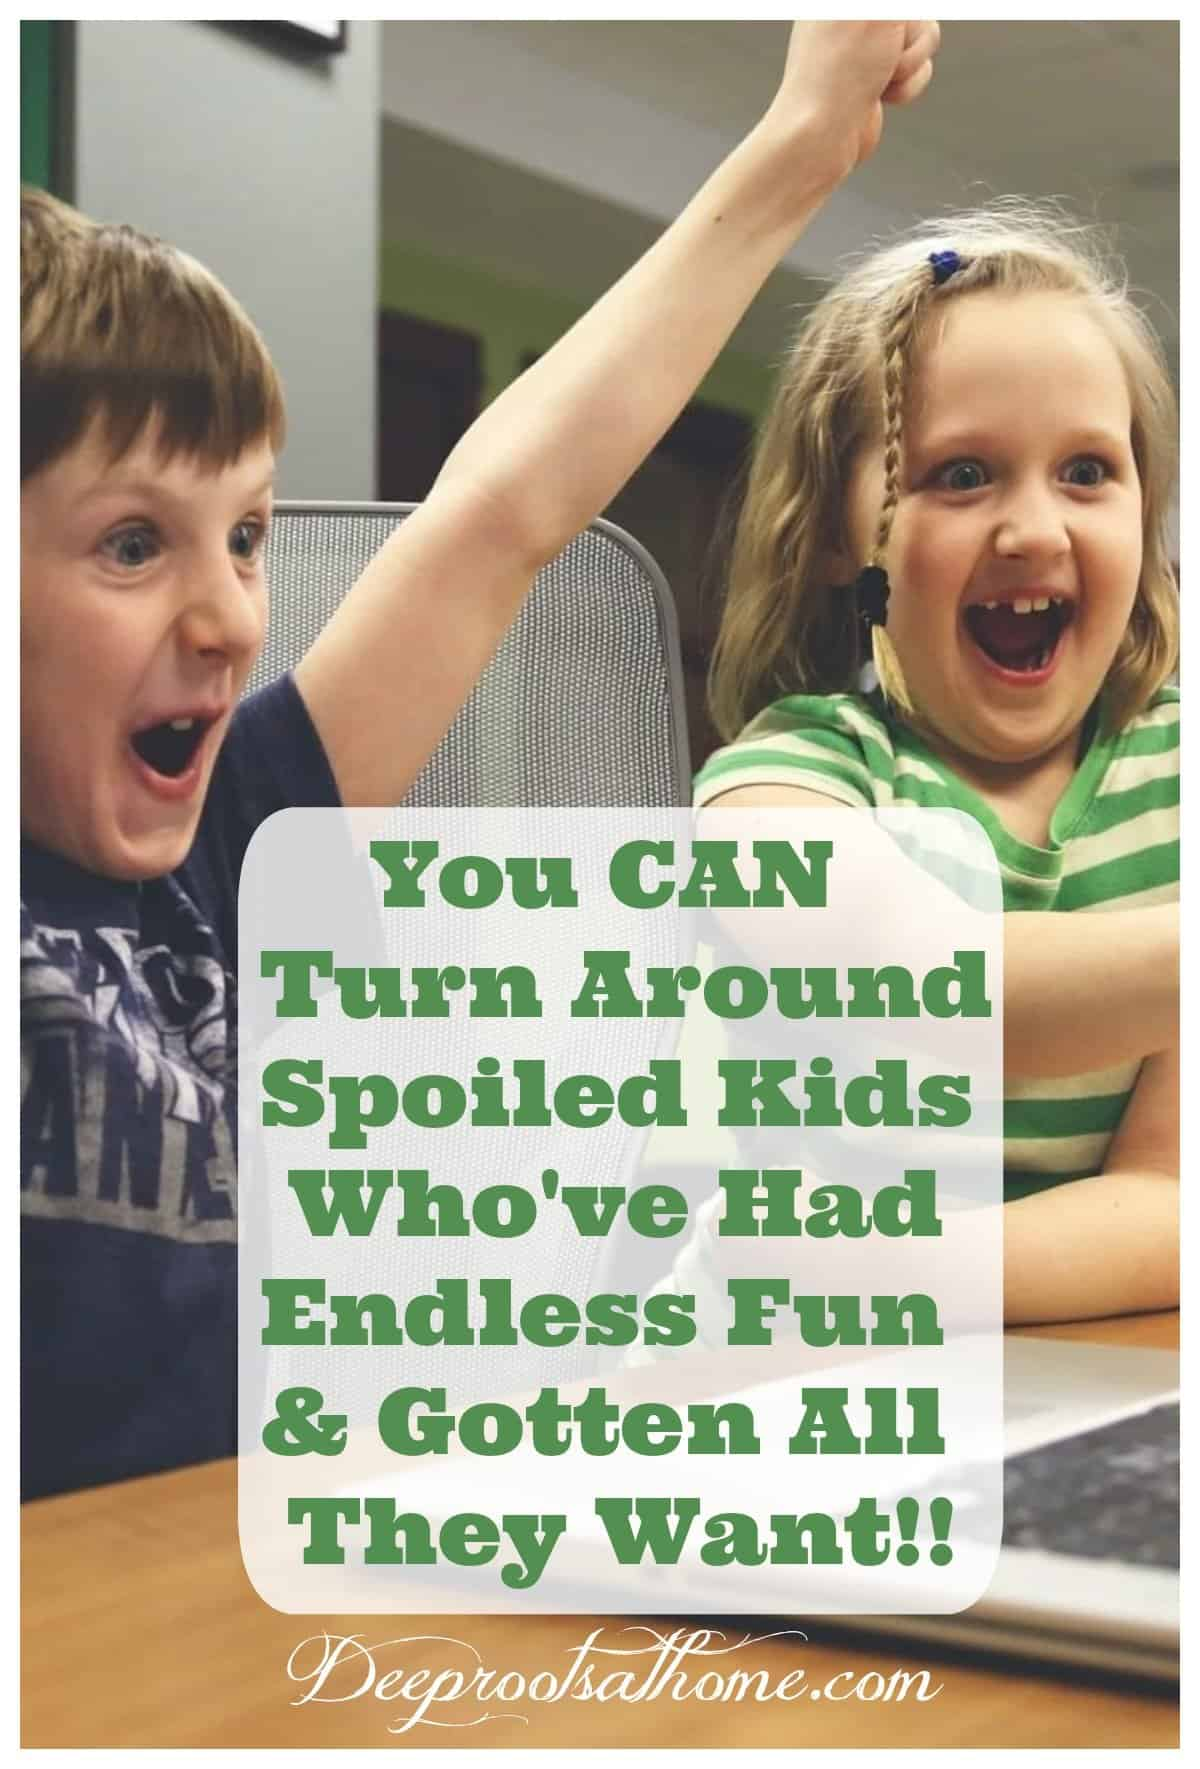 Turn Around Spoiled Kids Who've had Endless Fun & Gotten all They Want. A young boy and a girl cheering wildly over a game or something exciting on their laptop.